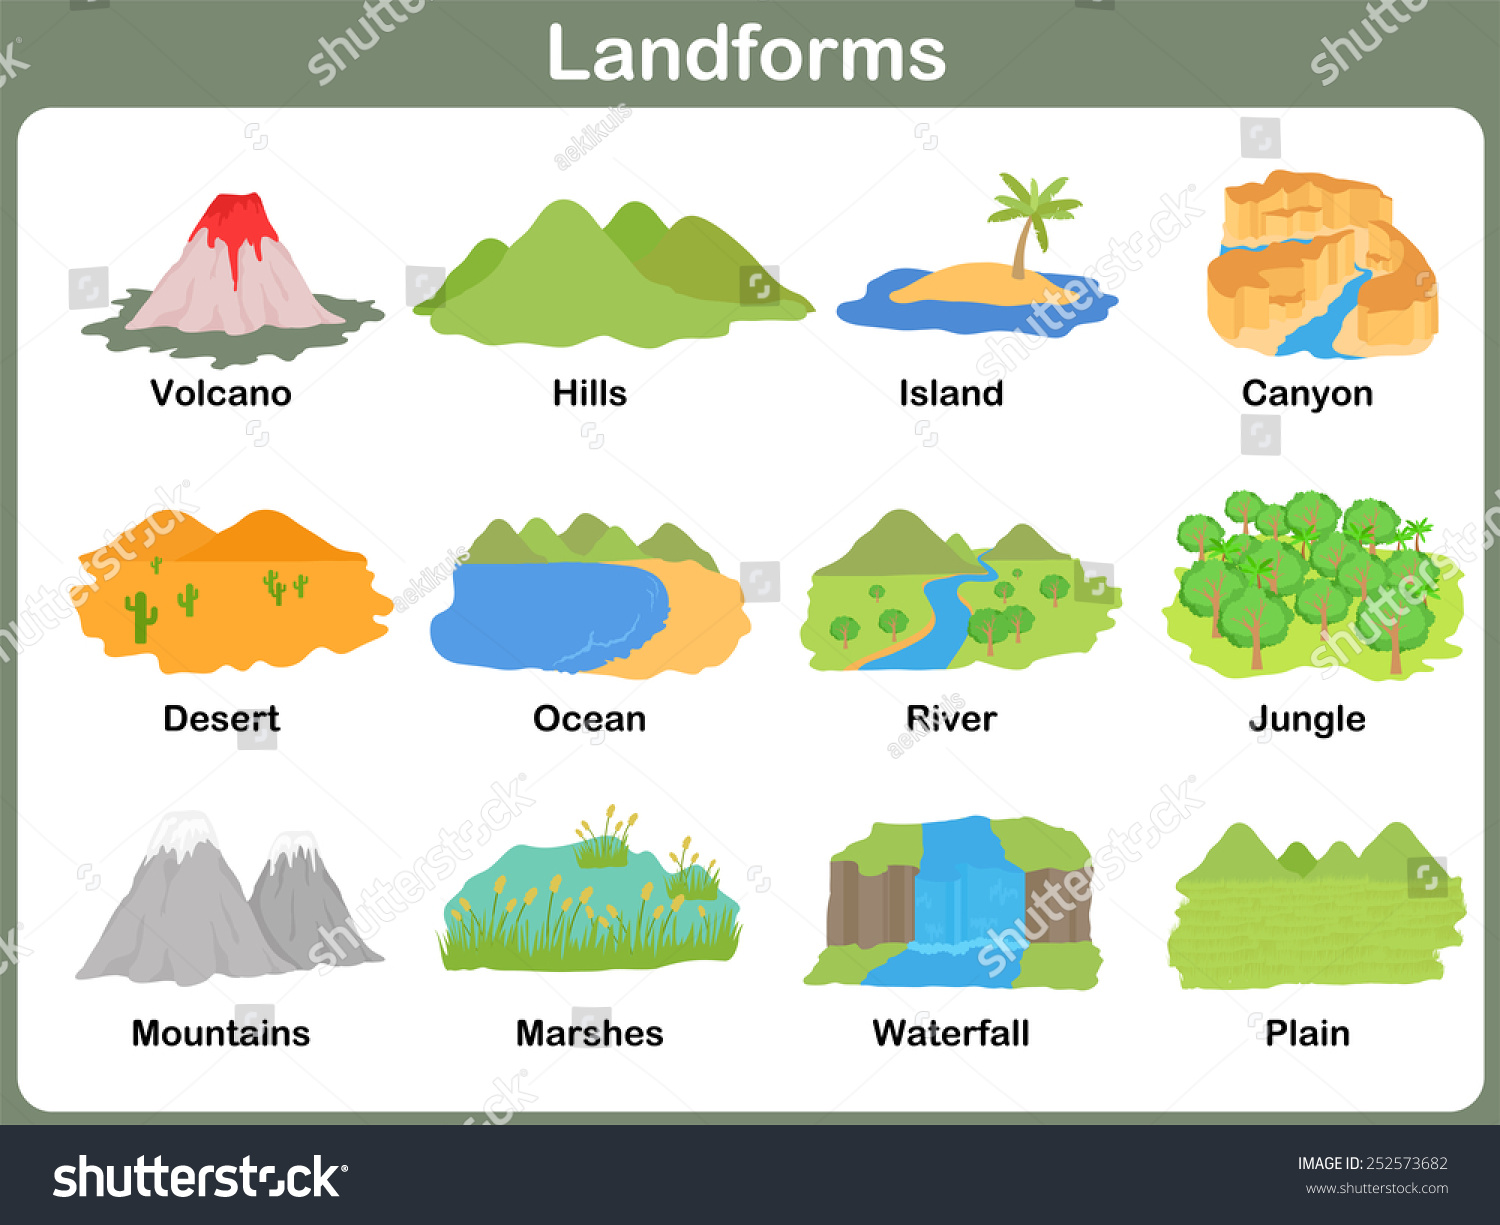 Worksheets Landforms Worksheet landforms worksheets for kids pixelpaperskin delibertad